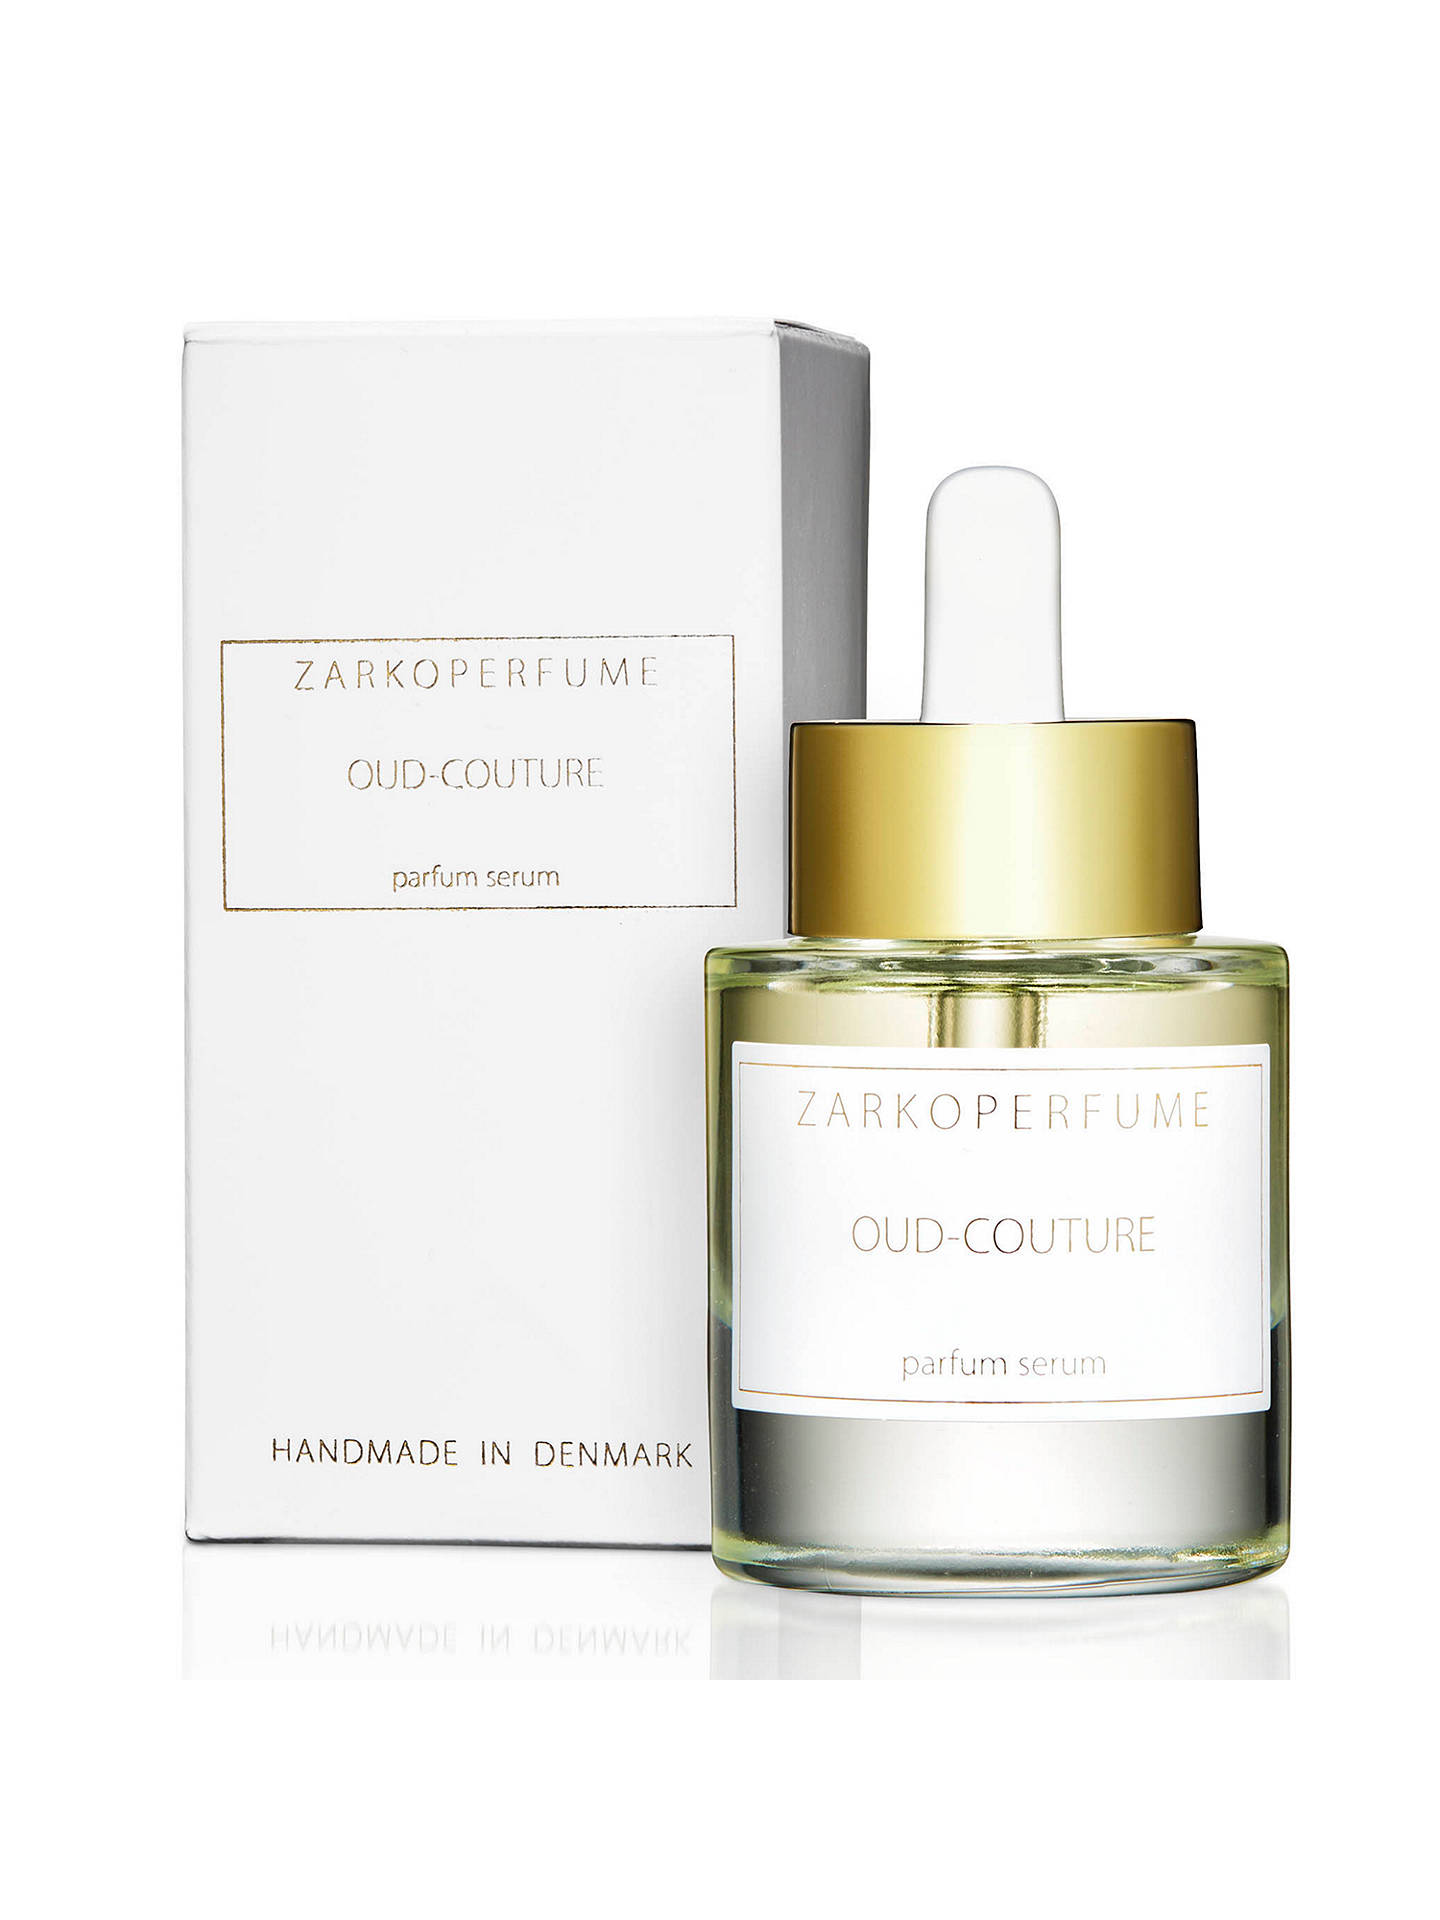 BuyZARKOPERFUME Oud-Couture Parfum Serum, 30ml Online at johnlewis.com